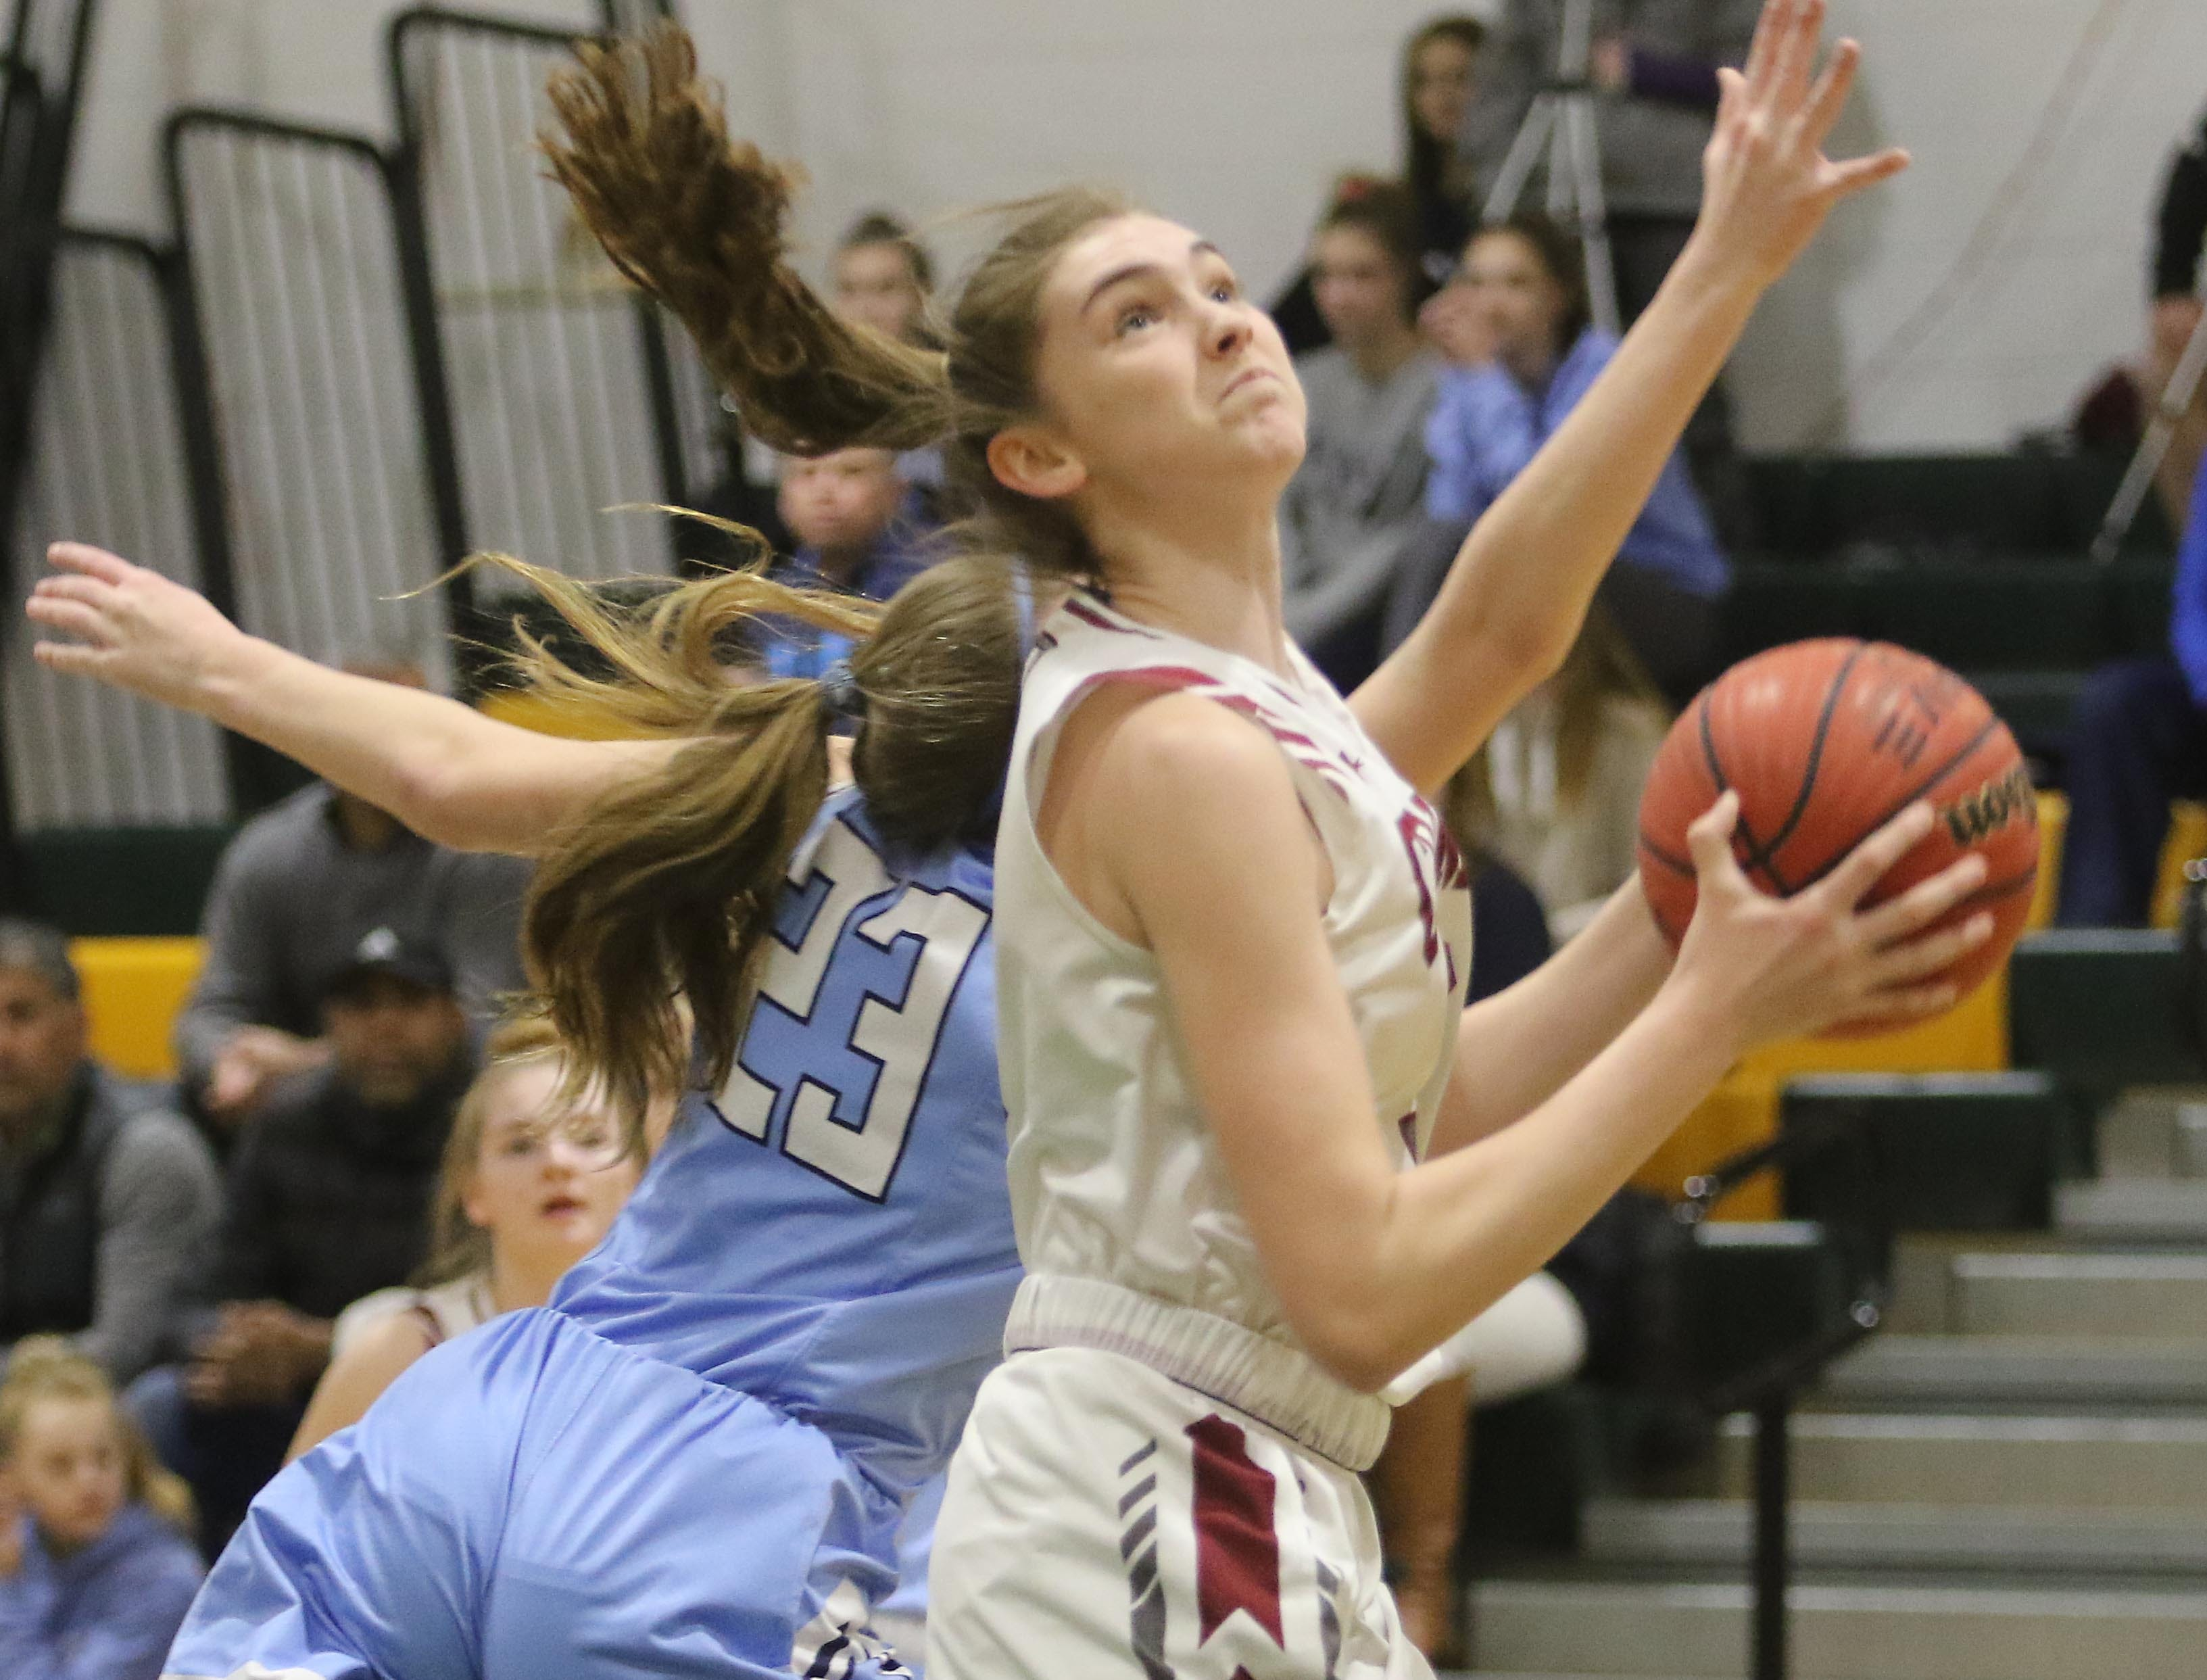 Erin Martin of Morristown-Beard goes up for the shot in the first half.